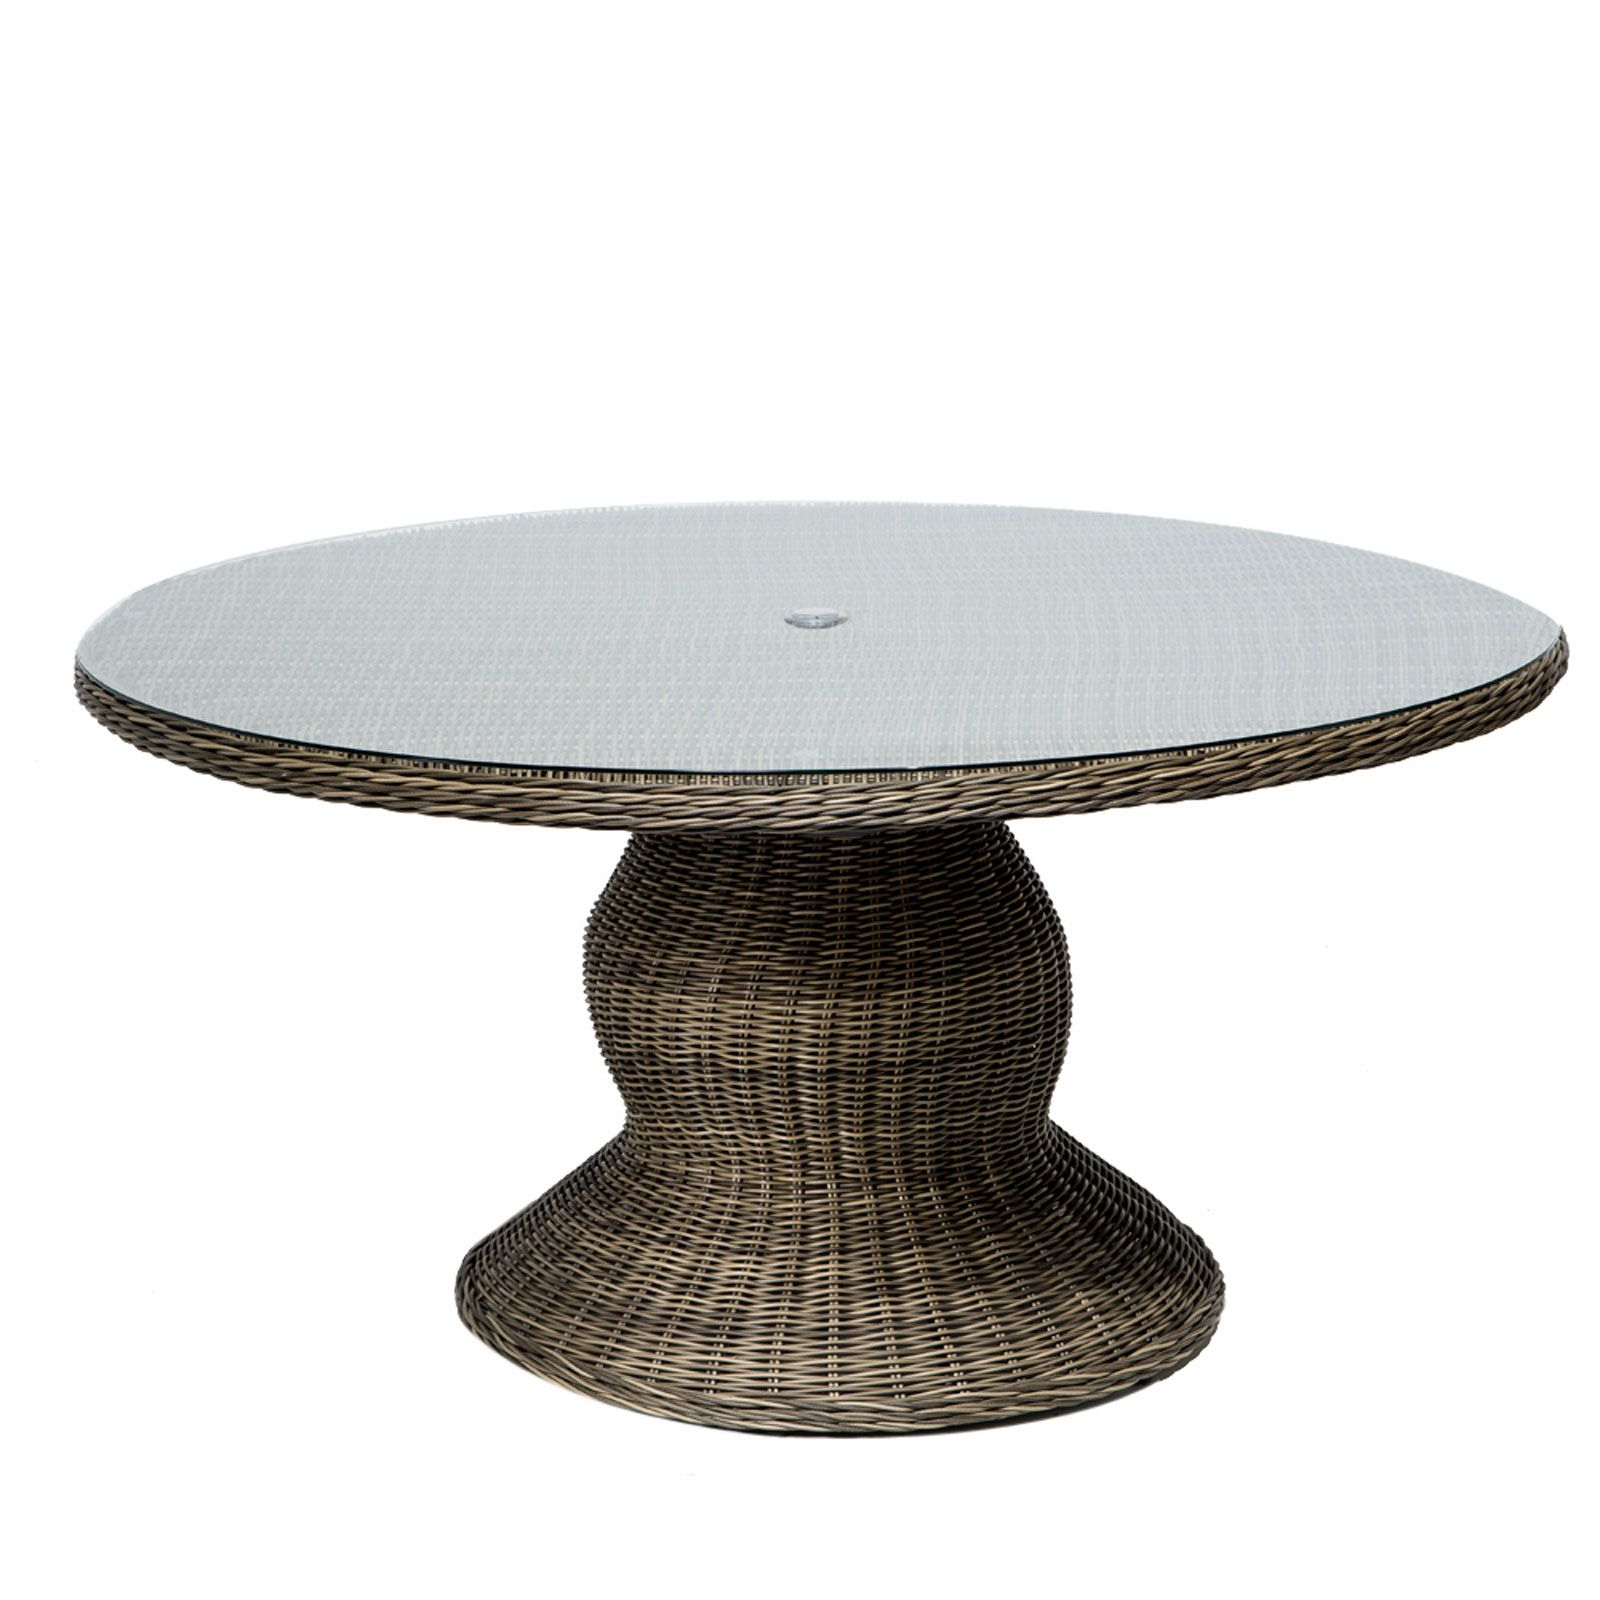 Inch Round Patio Table Furniture Ideas Pinterest Round - 60 inch round aluminum patio table